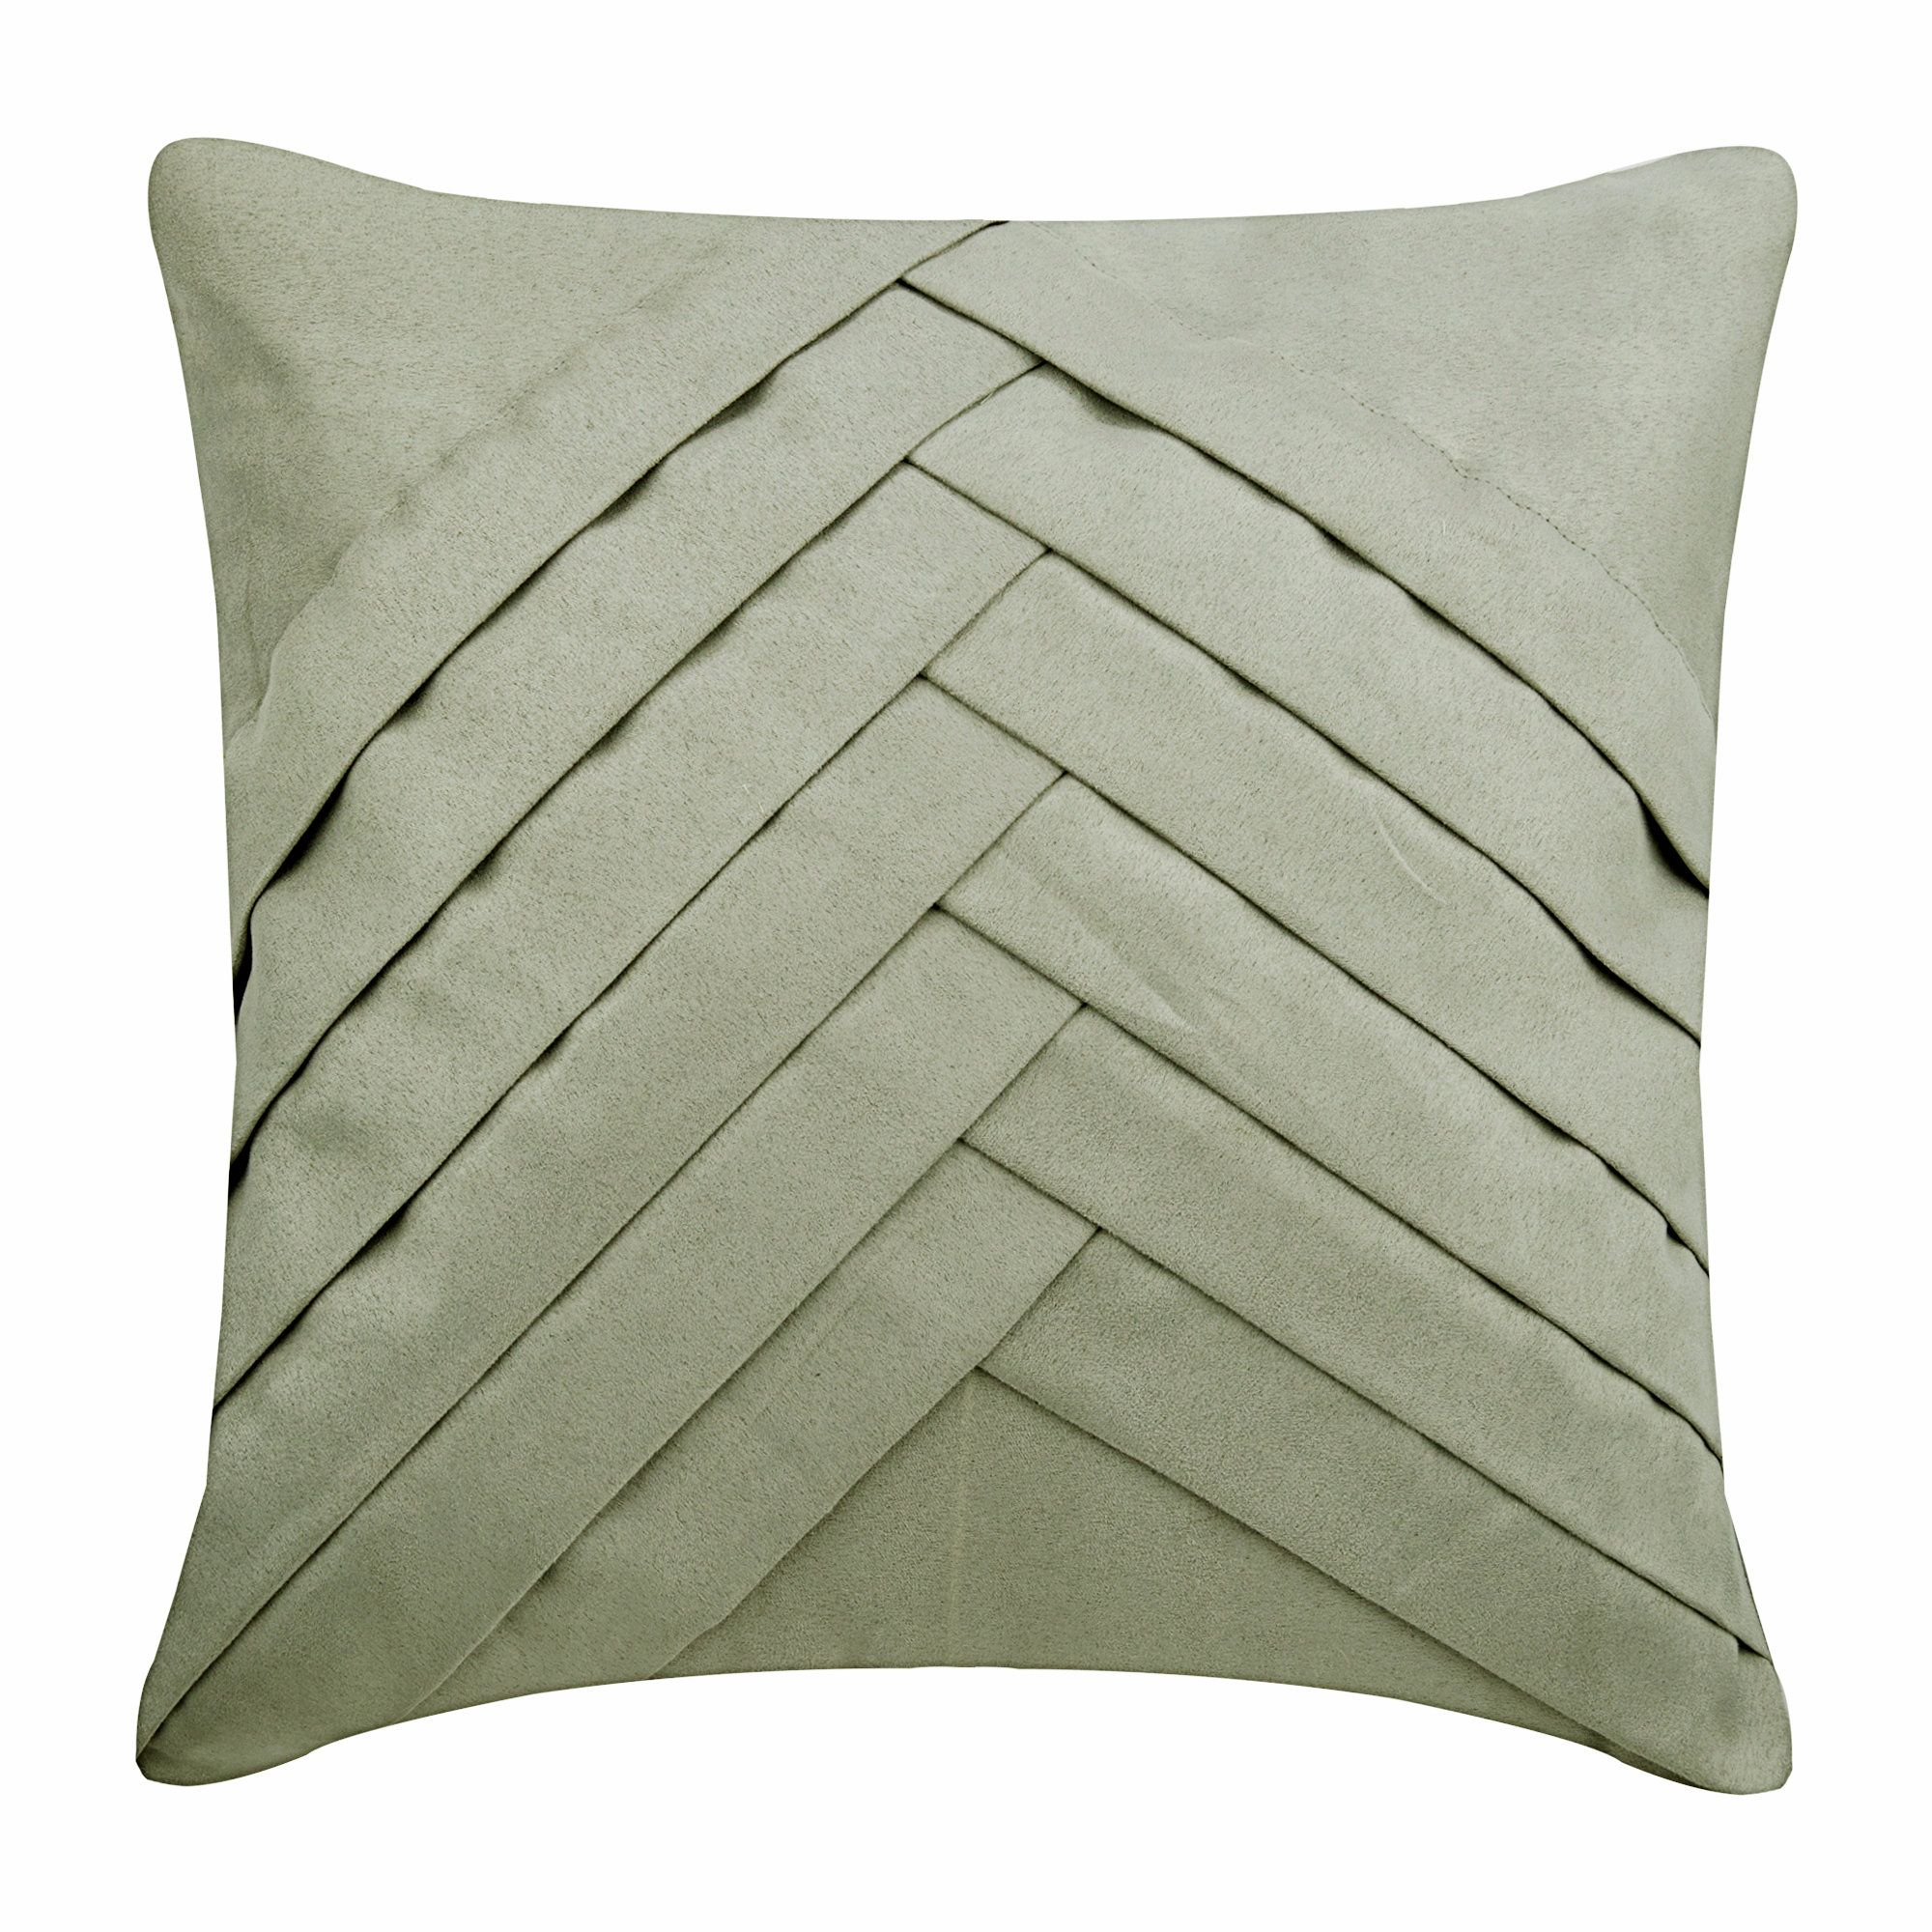 Light Grey Throw Pillows For Bed 16x16 Pillow Covers Suede Pleated